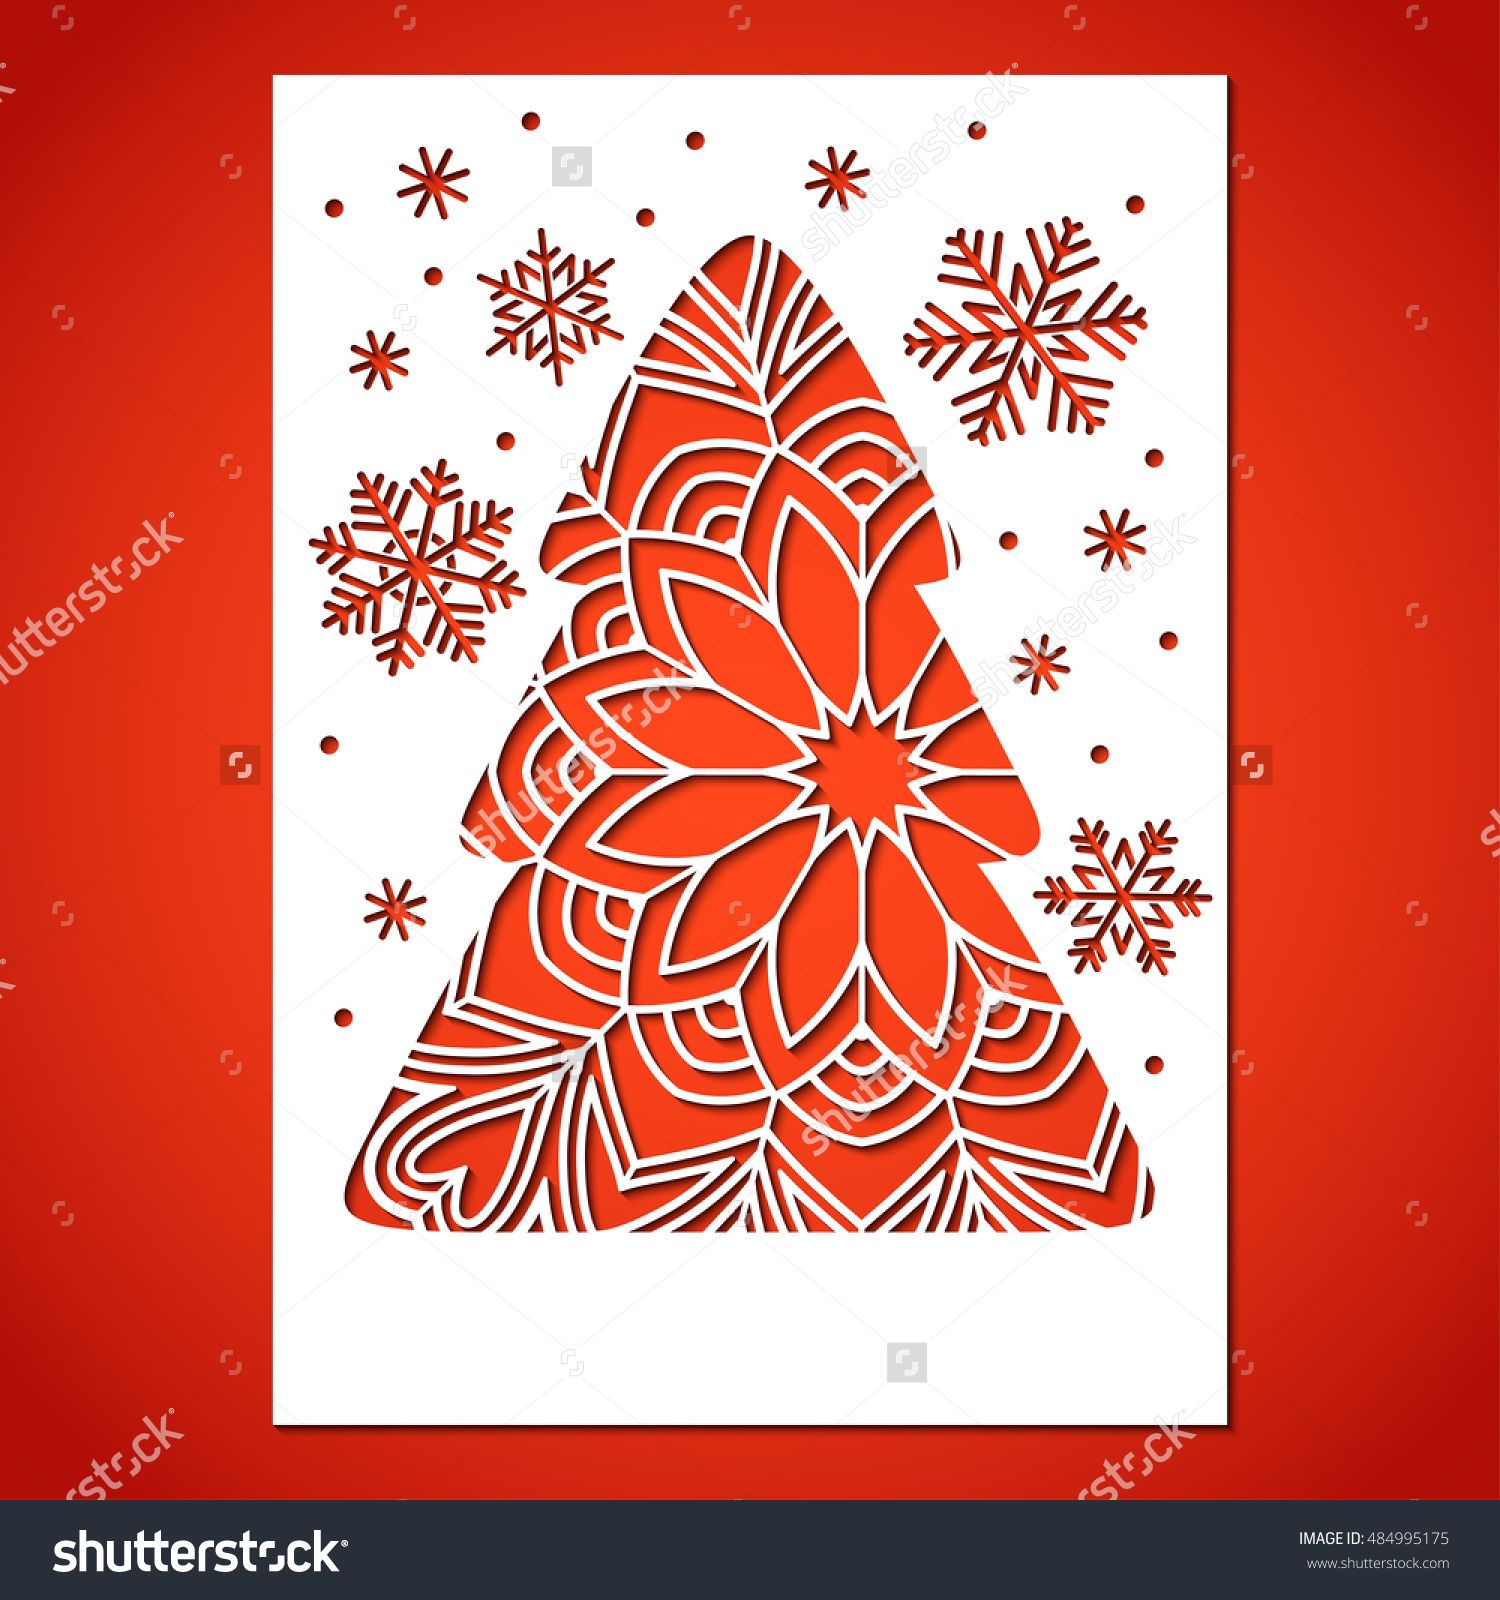 Openwork Christmas Tree And Snowflakes Laser Cutting Template For Greeting